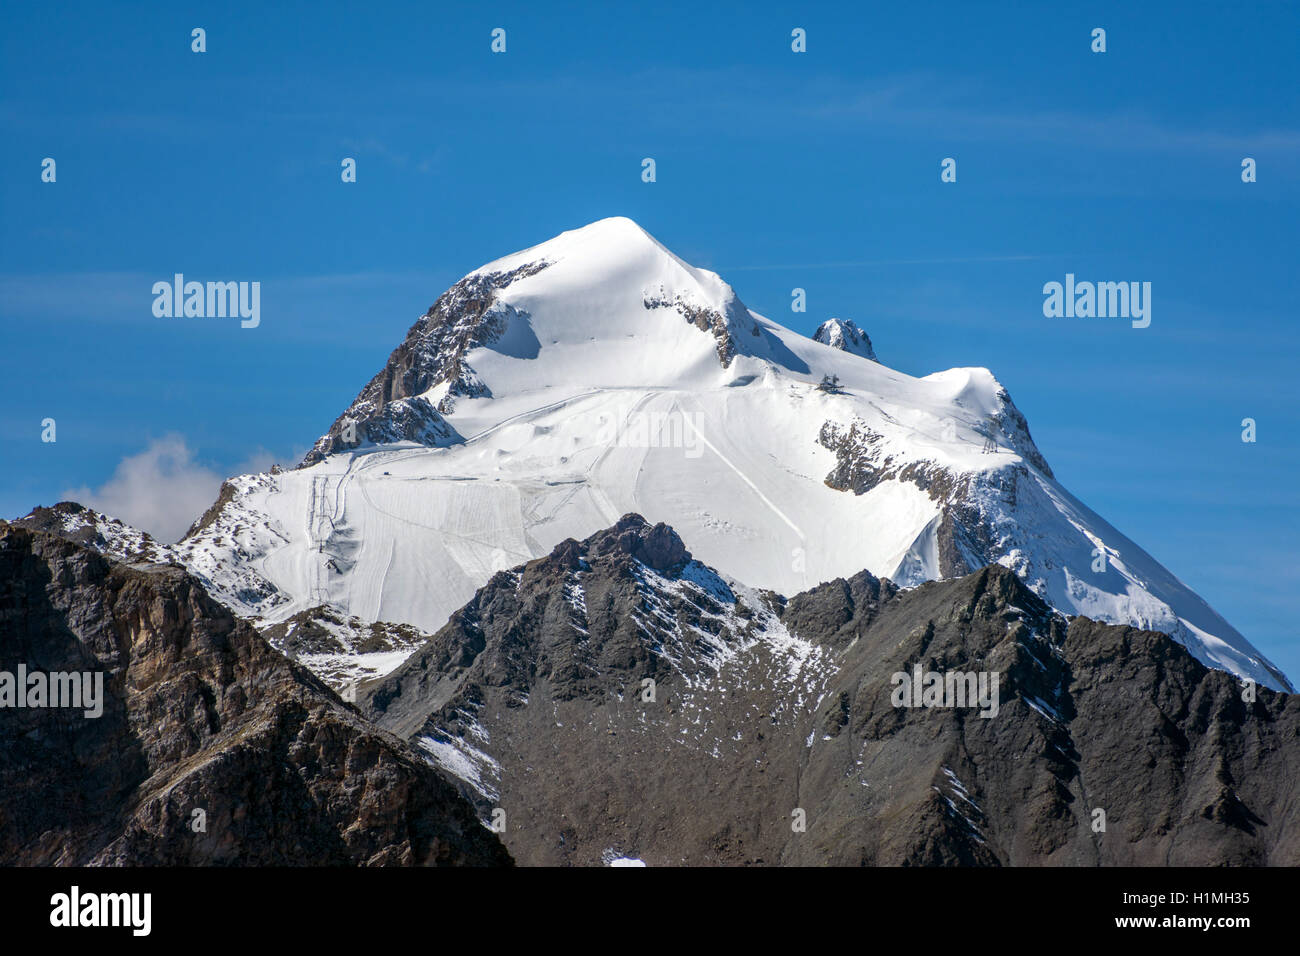 Distant View Of Grande Motte Mountain And Ski Area Tignes France Stock Photo Alamy